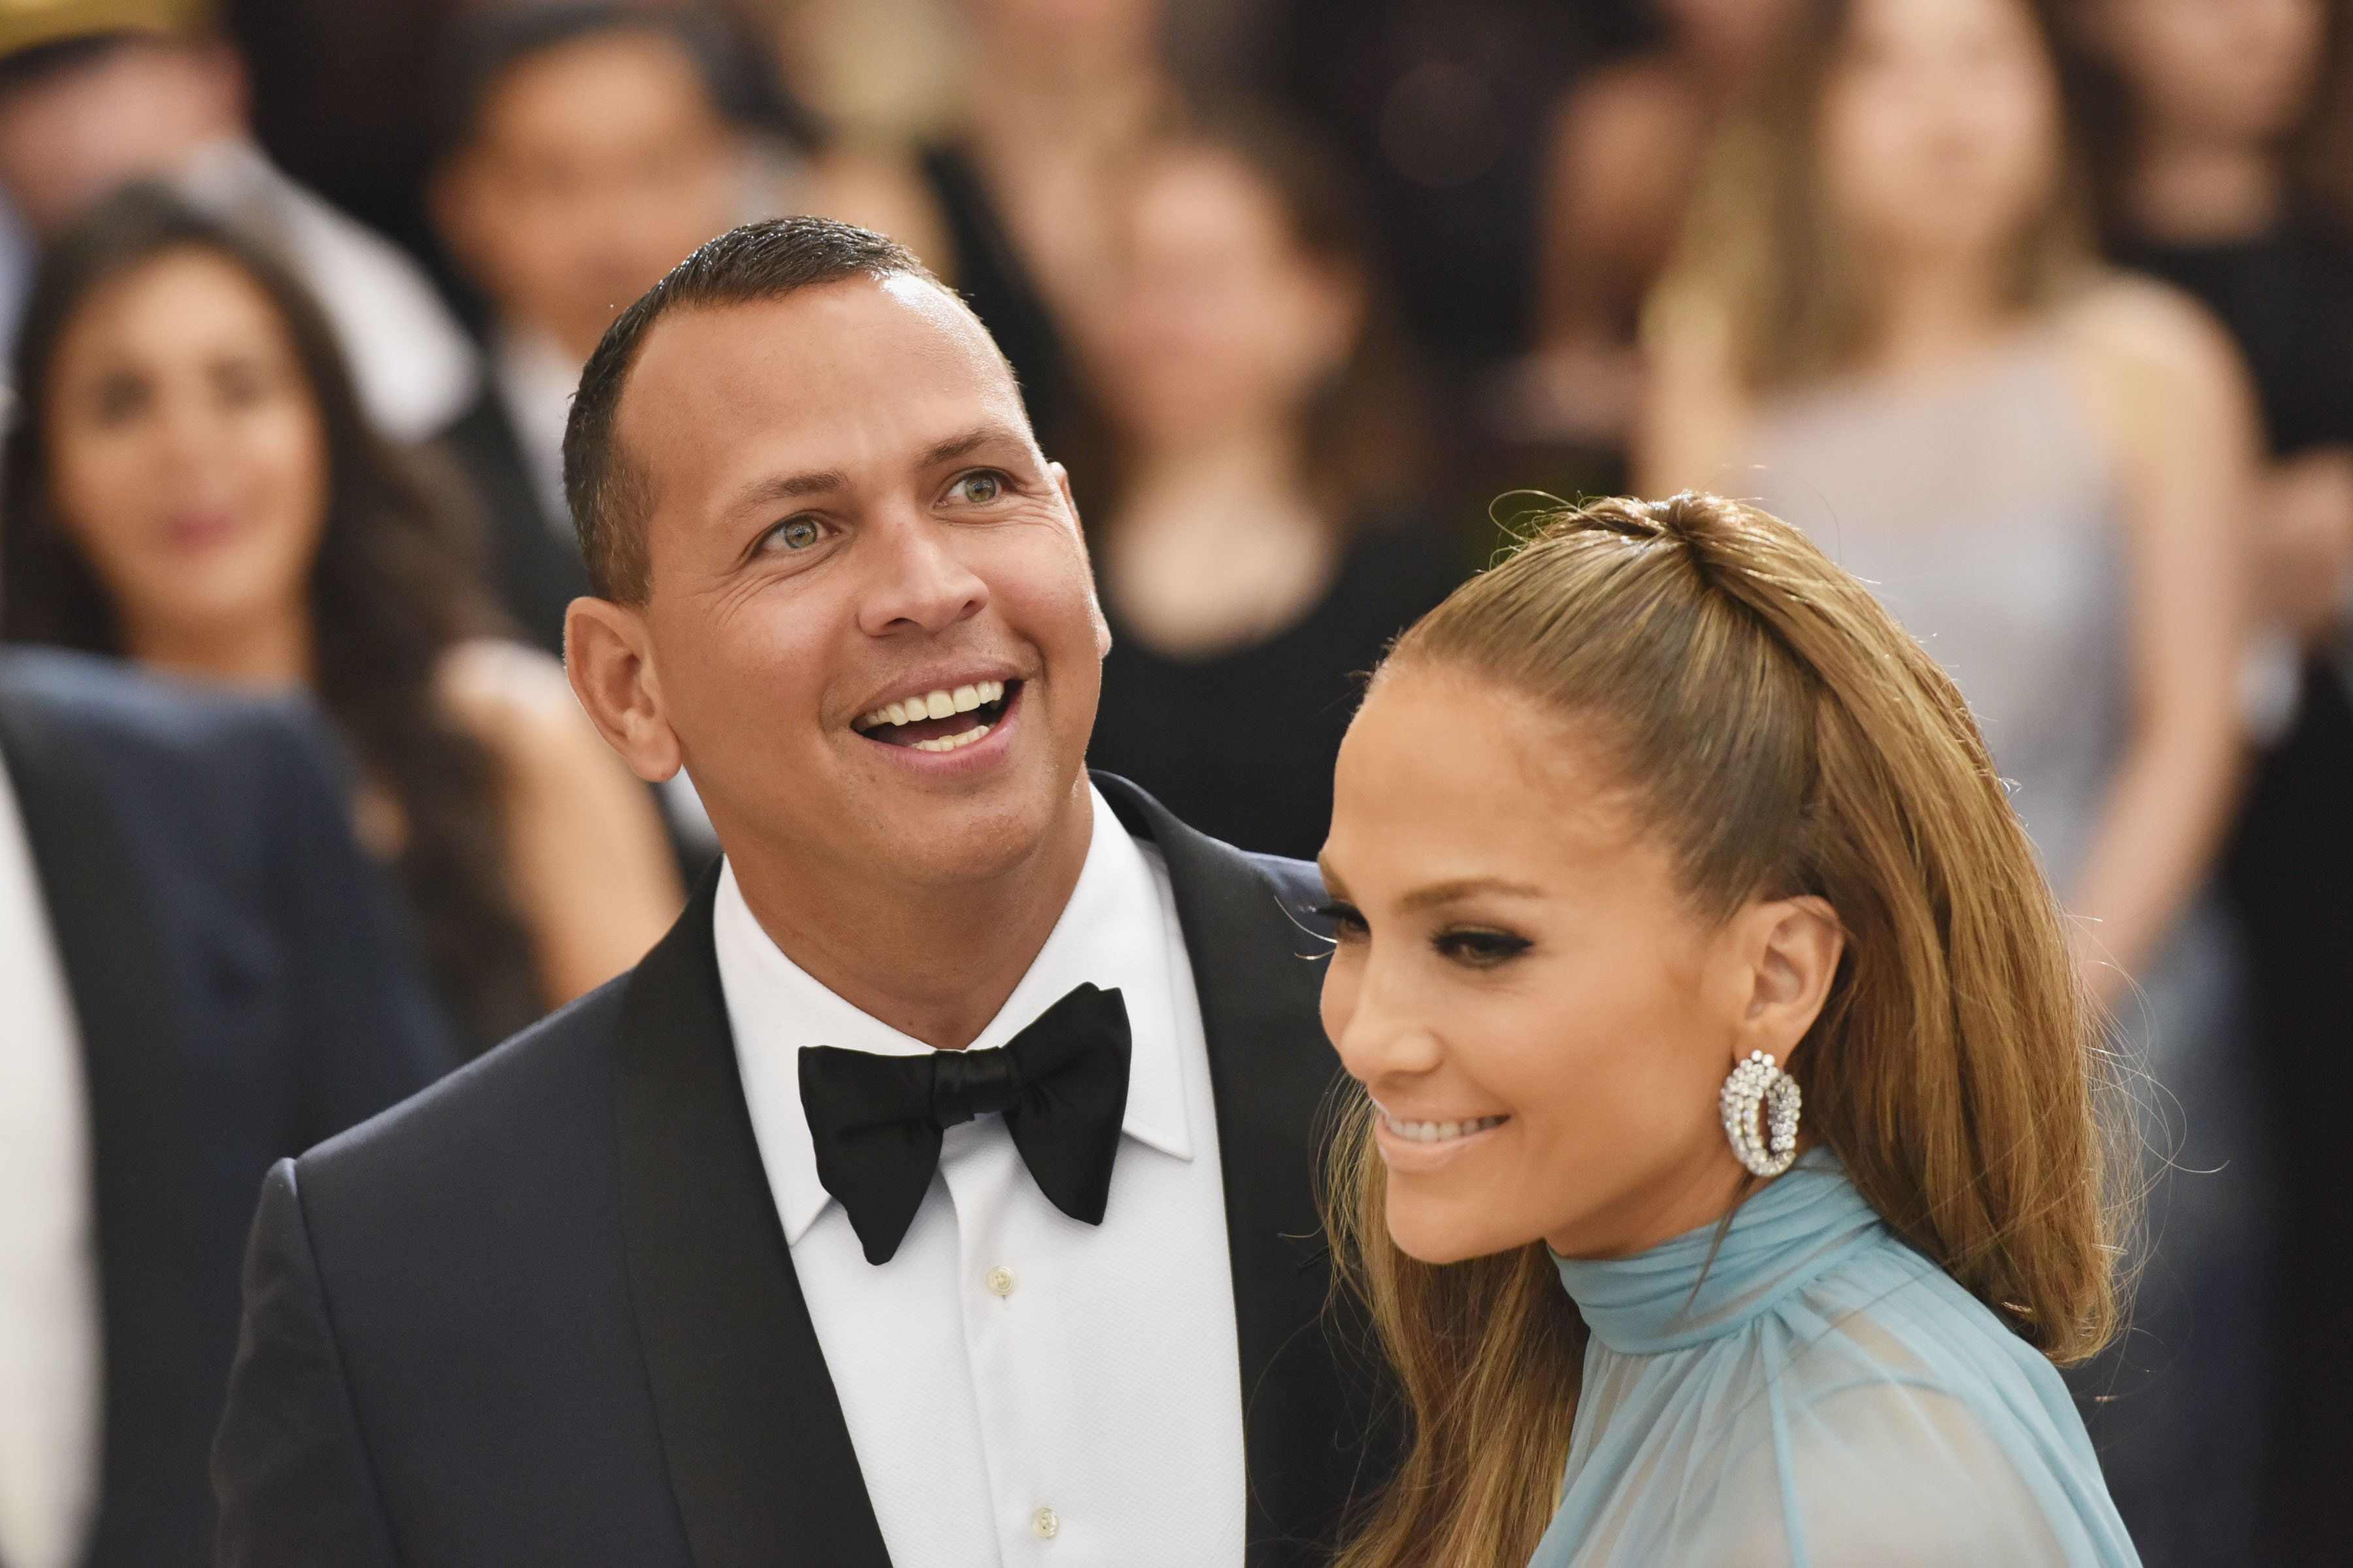 NEW YORK, NY - MAY 01:  Alex Rodriguez and Jennifer Lopez arrive at 'Rei Kawakubo/Comme des Garcons: Art Of The In-Between' Costume Institute Gala at The Metropolitan Museum on May 1, 2017 in New York City.  (Photo by Sean Zanni/Patrick McMullan via Getty Images)